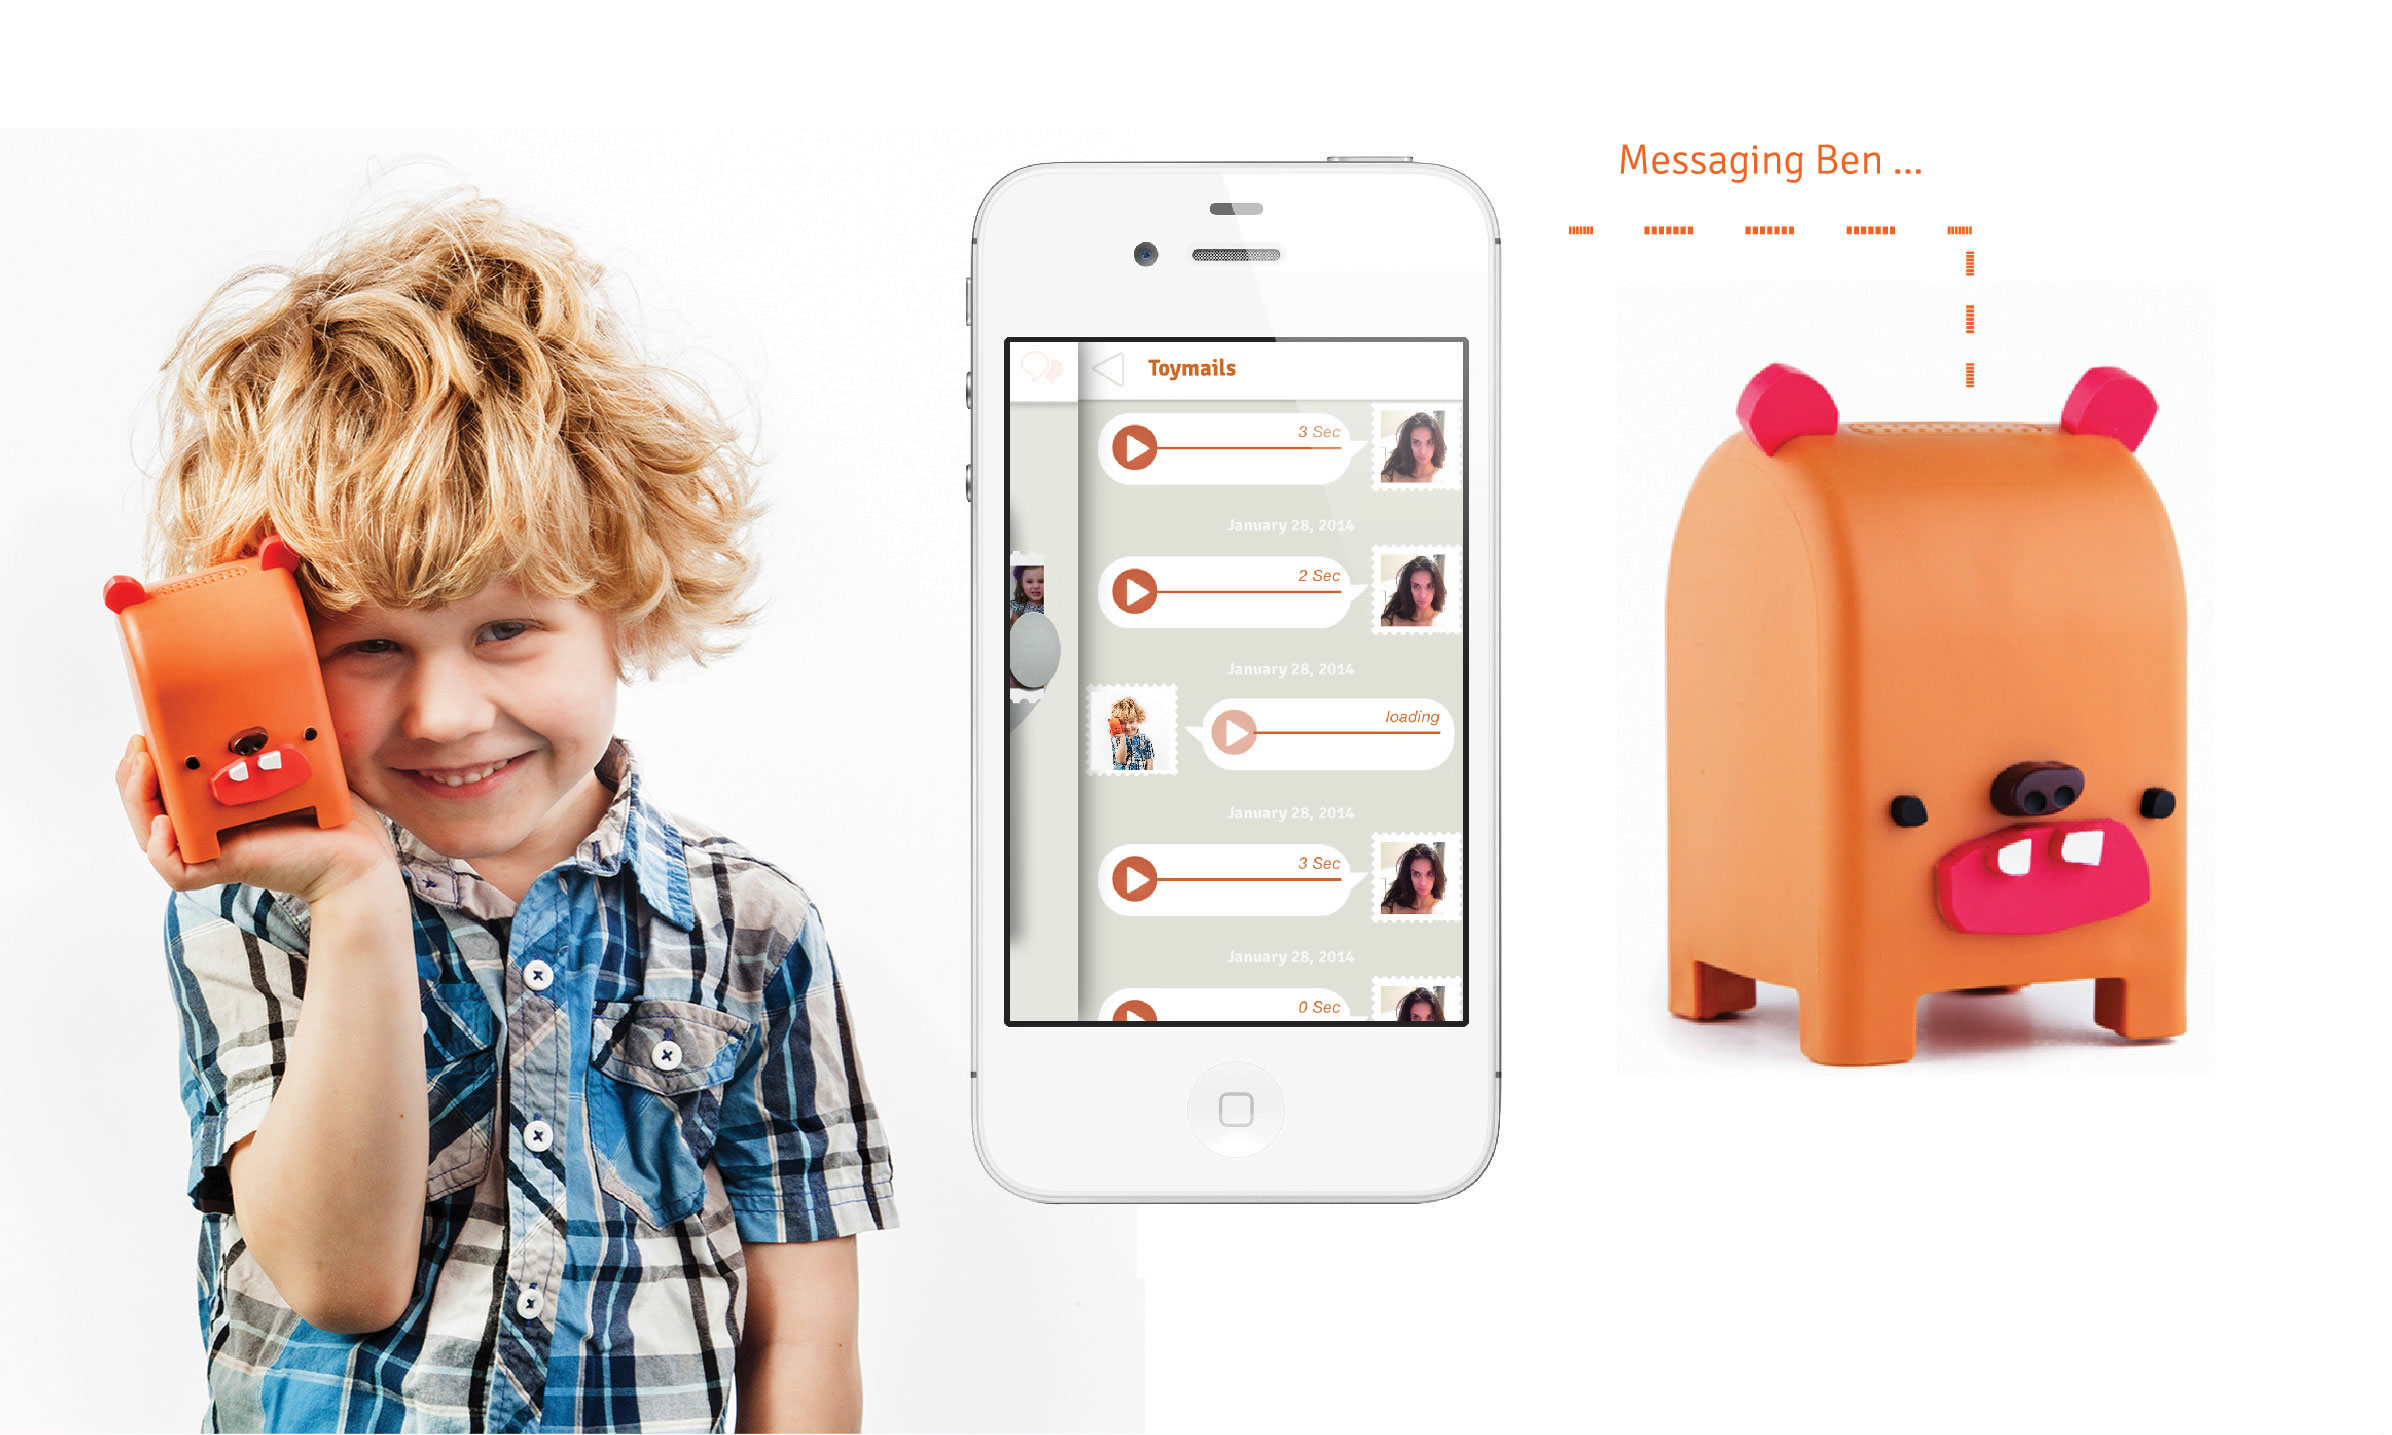 """It's like voice texting a little one in your life through a toy they play with. This lets the traveling mom interact with their kids in a whole new way. It's a high tech """"Social toy"""". The smartphone Toymail app is that lets you send/receive..."""